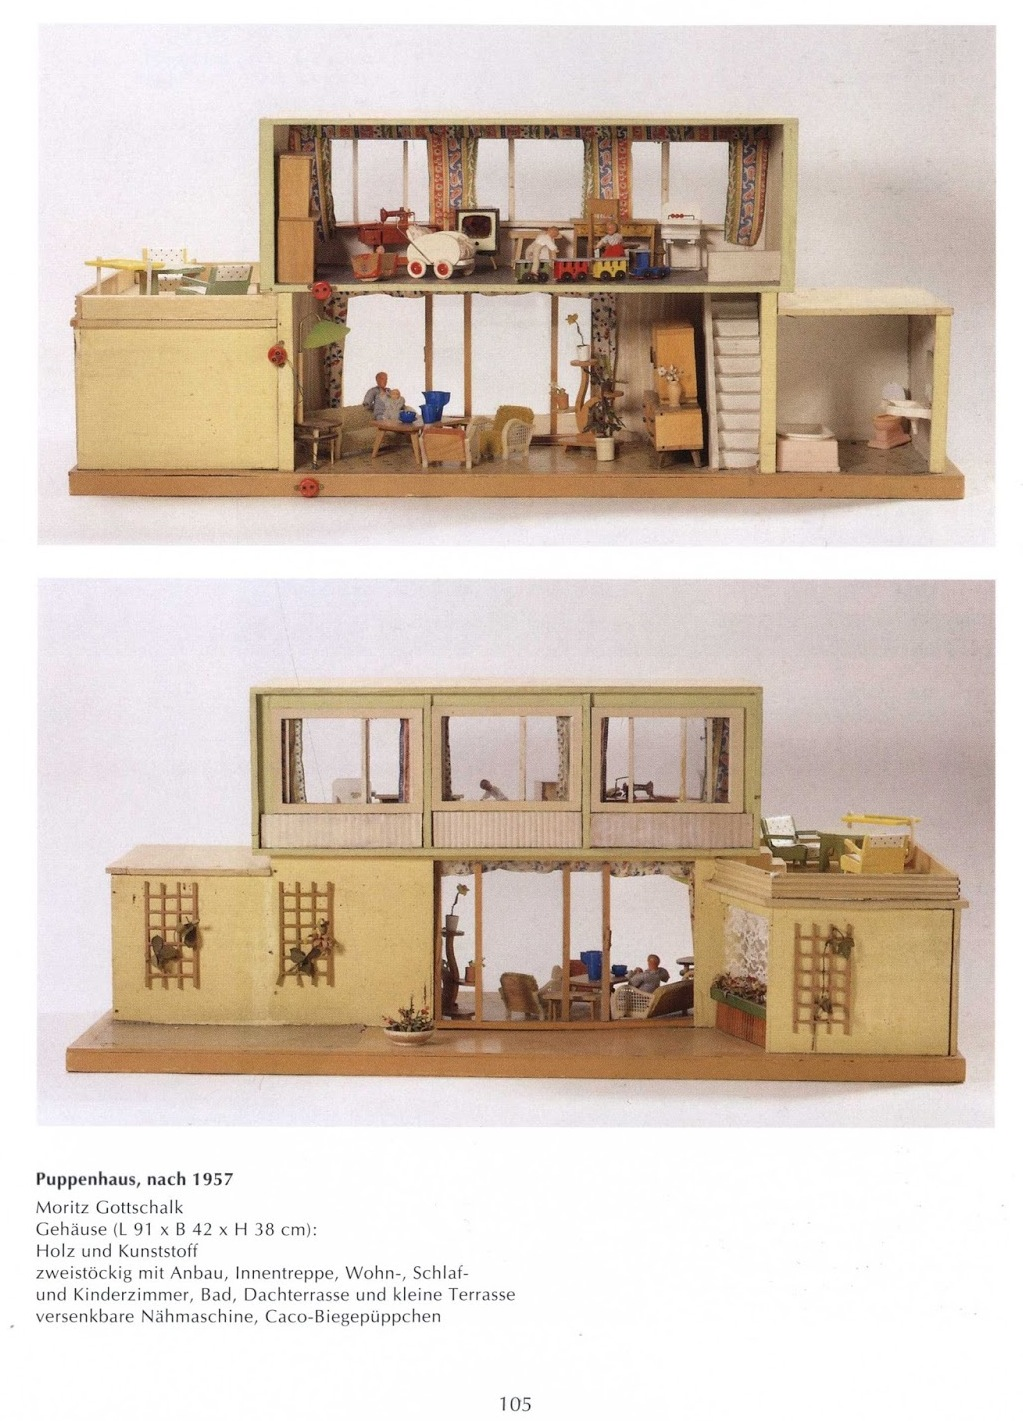 1960S Houses Moritz Gottschalk Dolls Houses 19471971.